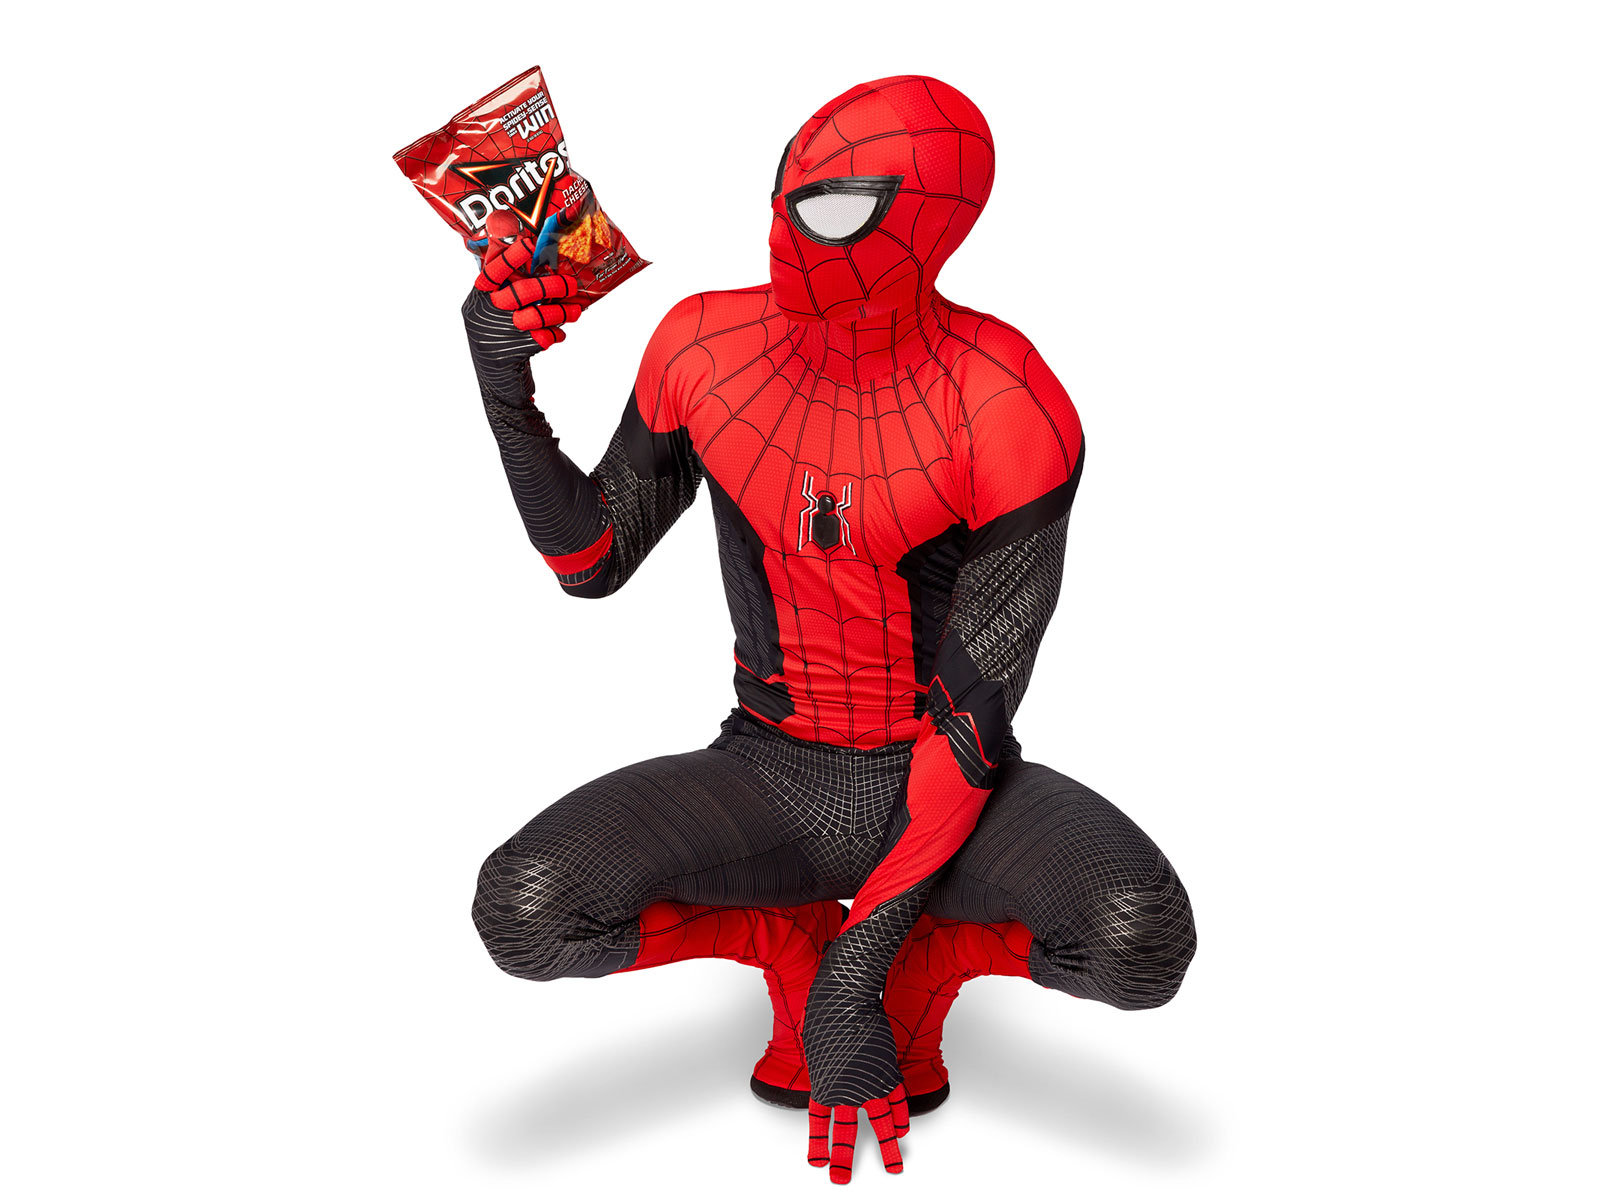 These 'Incognito Doritos' Bags Secretly Turn into Spider-Man Suits